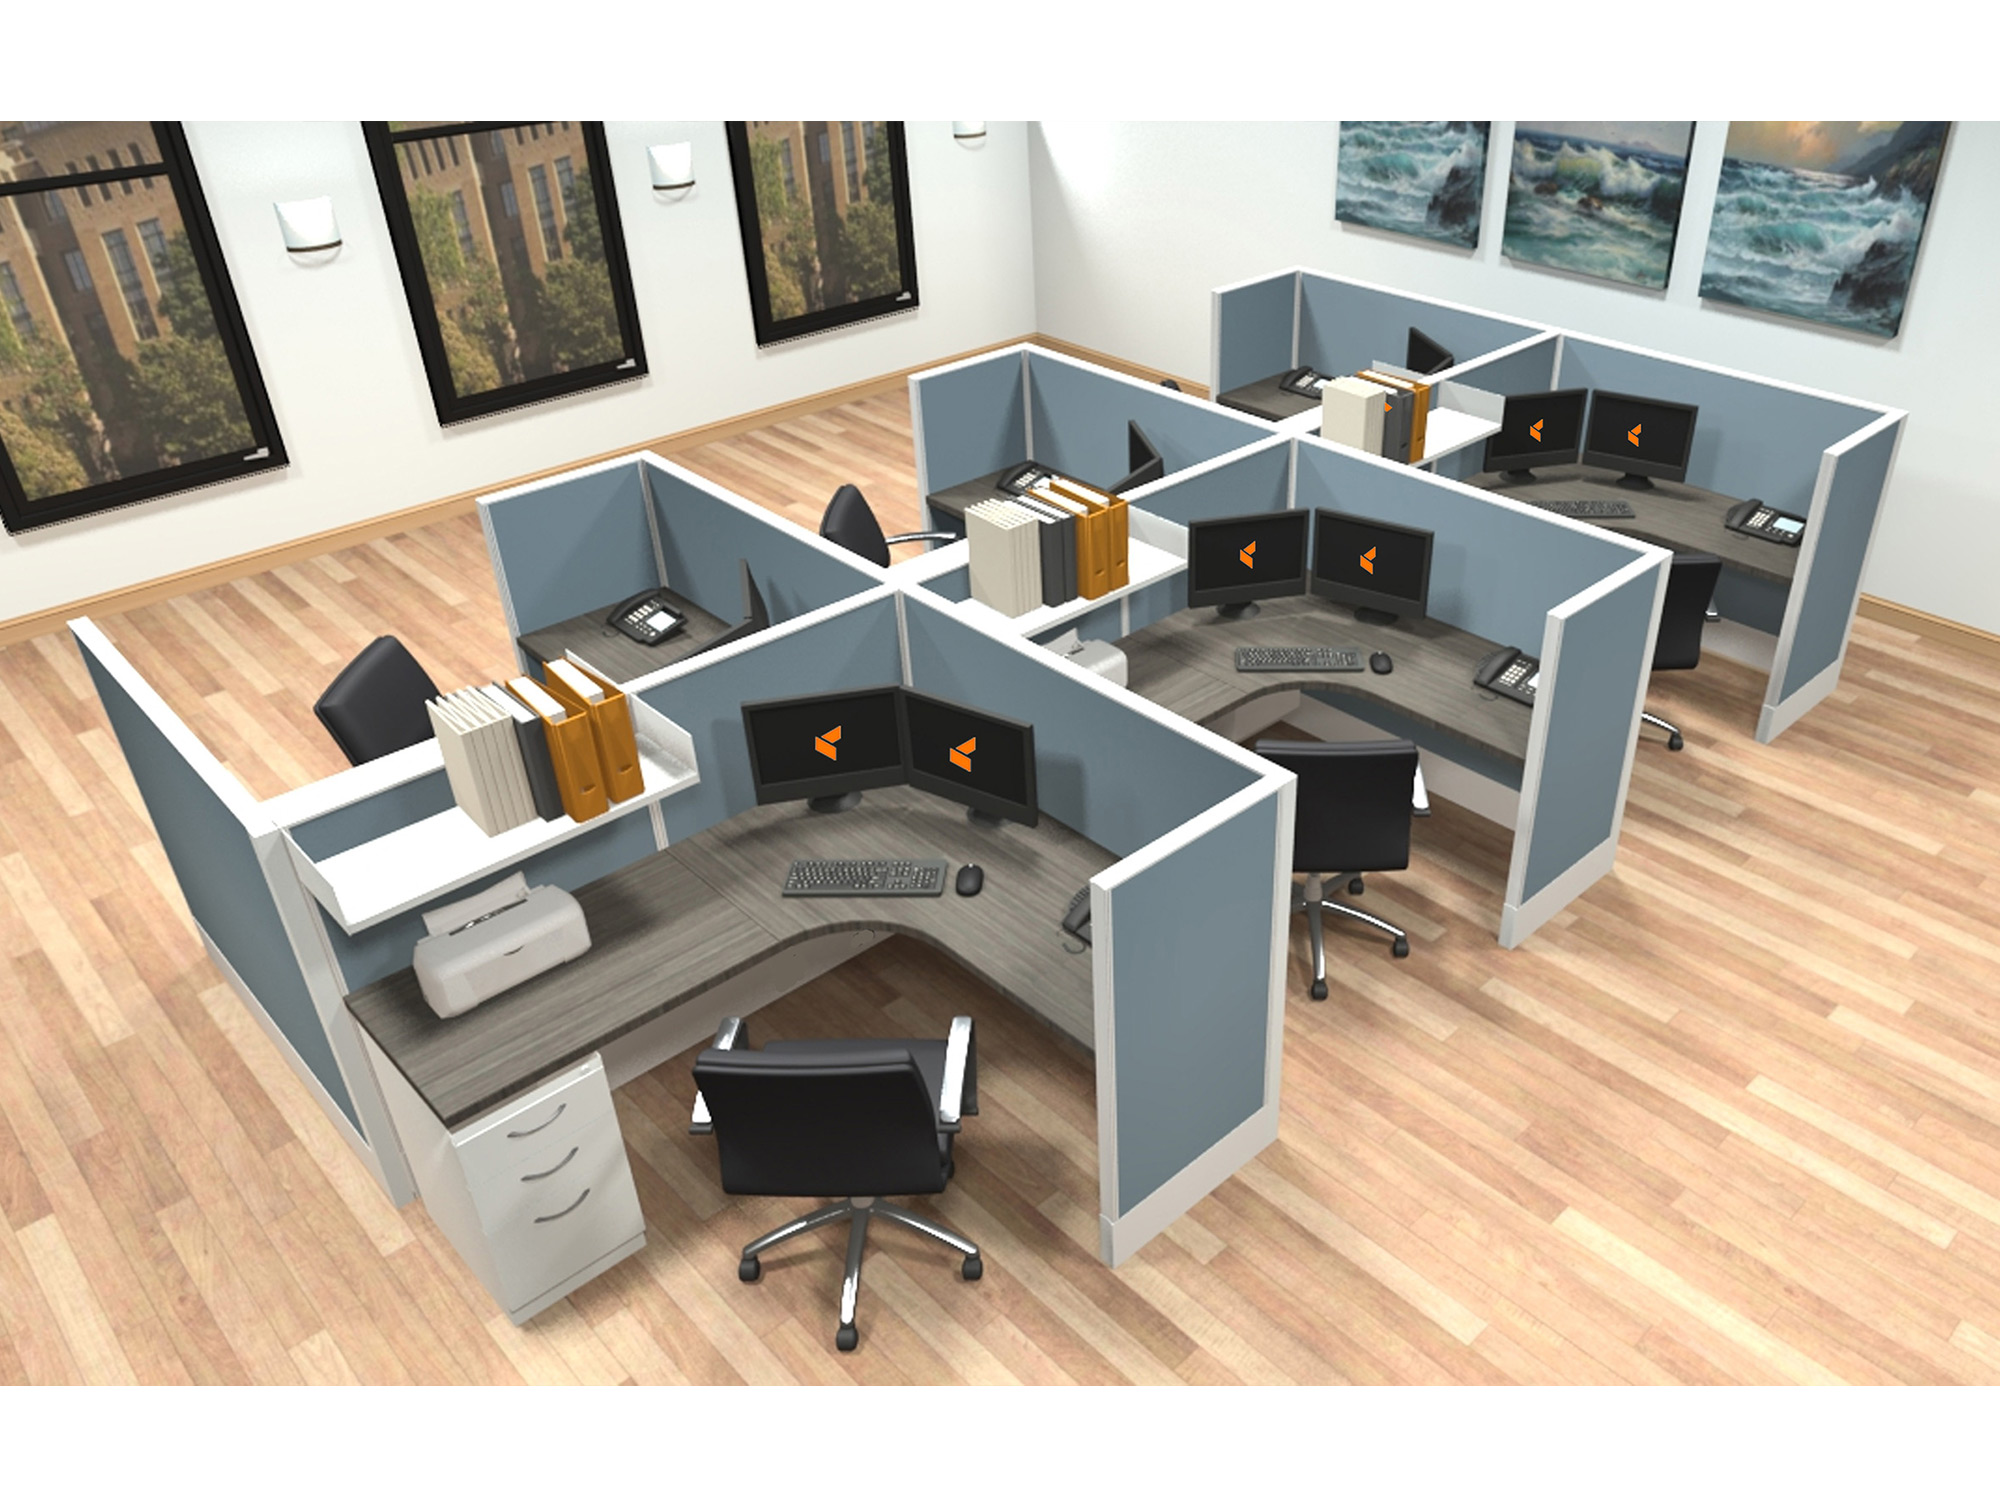 5x6 modular workstations from AIS - 6 Pack Cluster